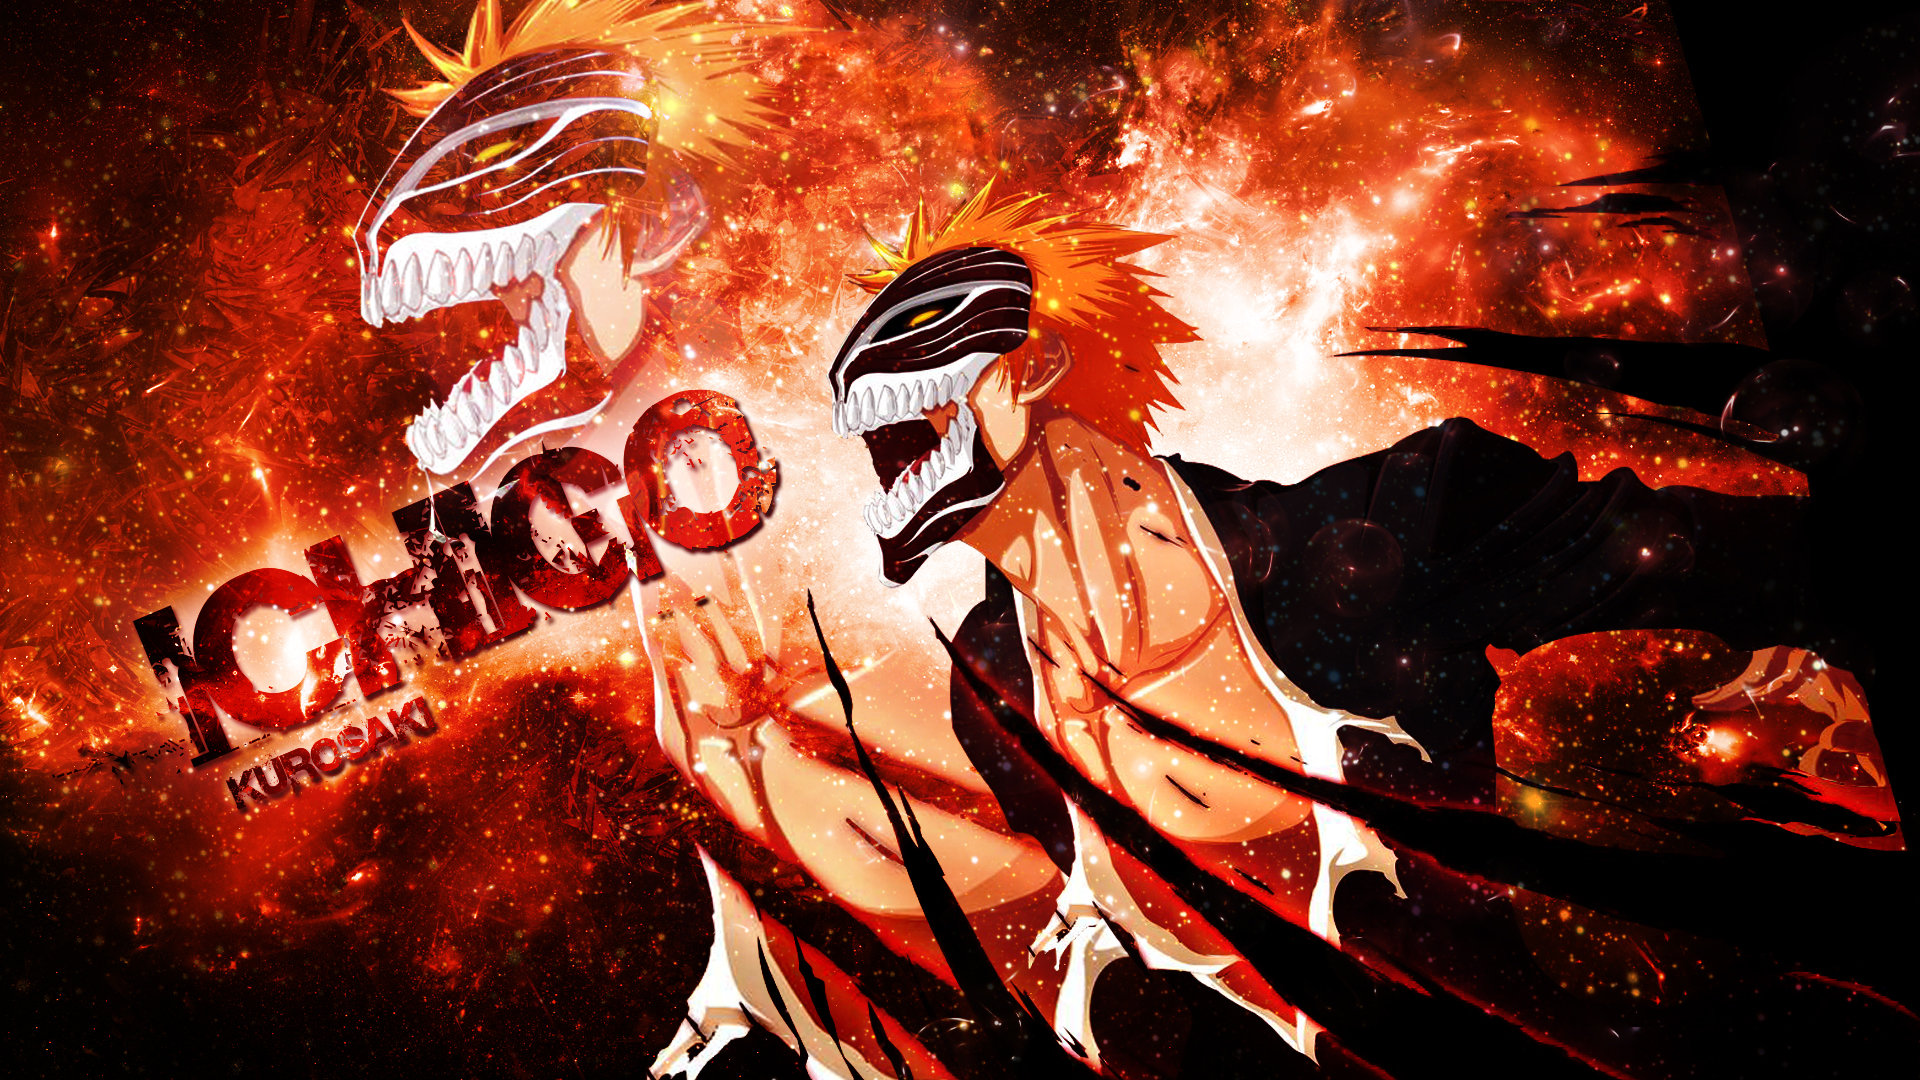 Download full hd 1920x1080 Bleach desktop background ID:418868 for free